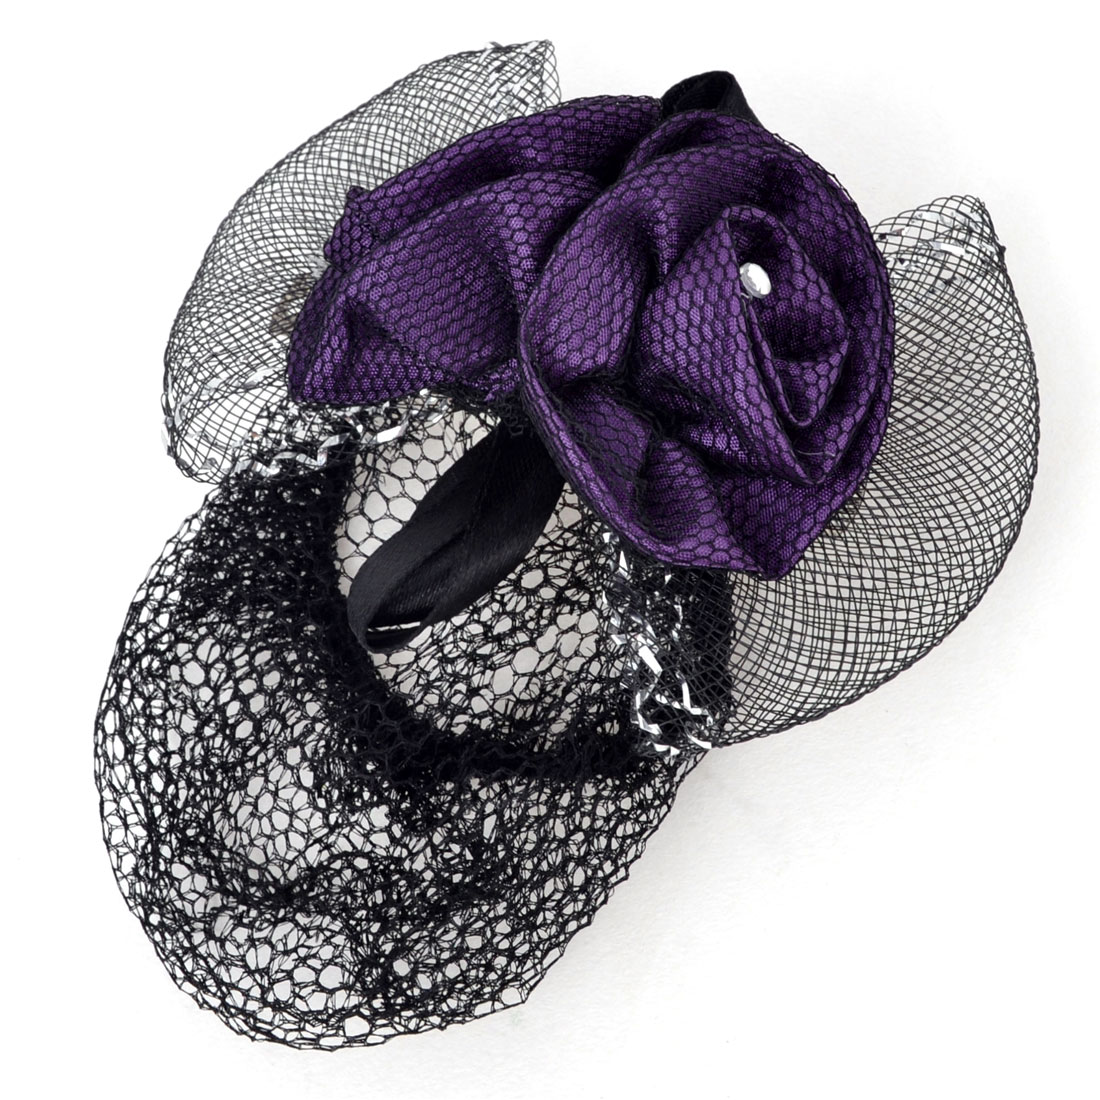 Lady Gift Purple Flower Bowknot Ornament Snood Net Hair Clip Barrette Black